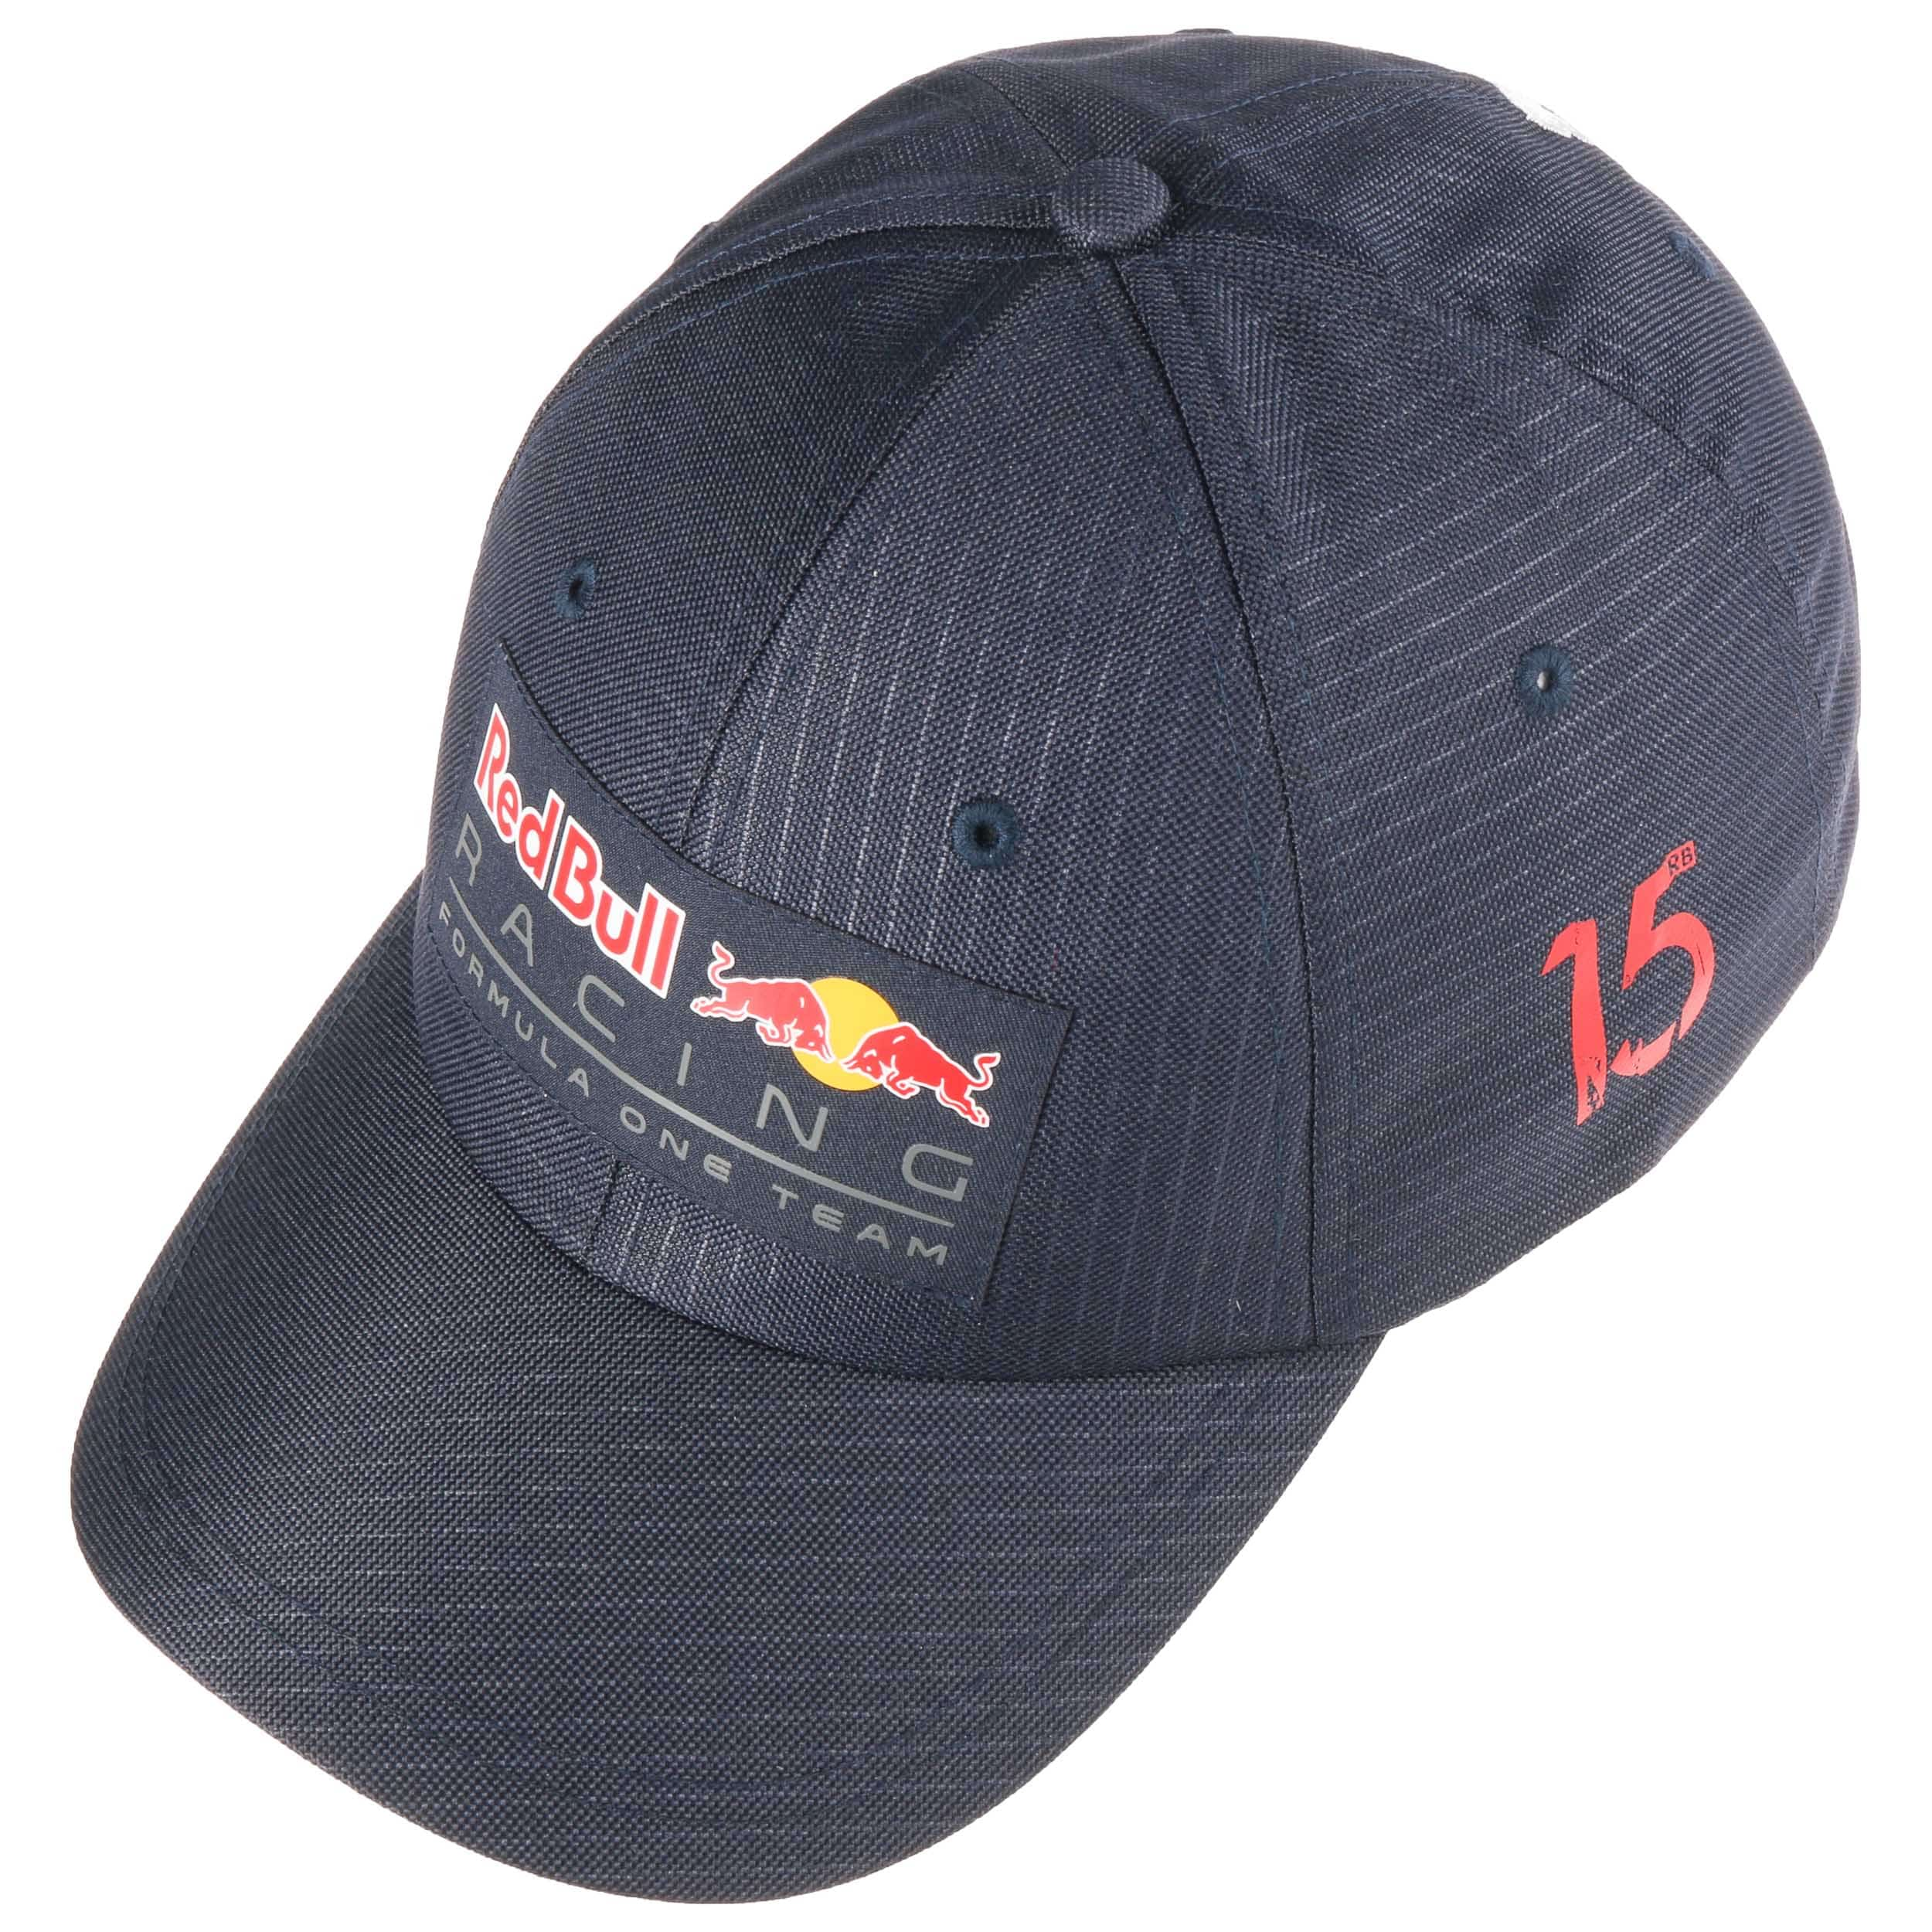 Gorra Red Bull Racing Lifestyle Curved by PUMA - azul oscuro 1 ... 1ec060775c6